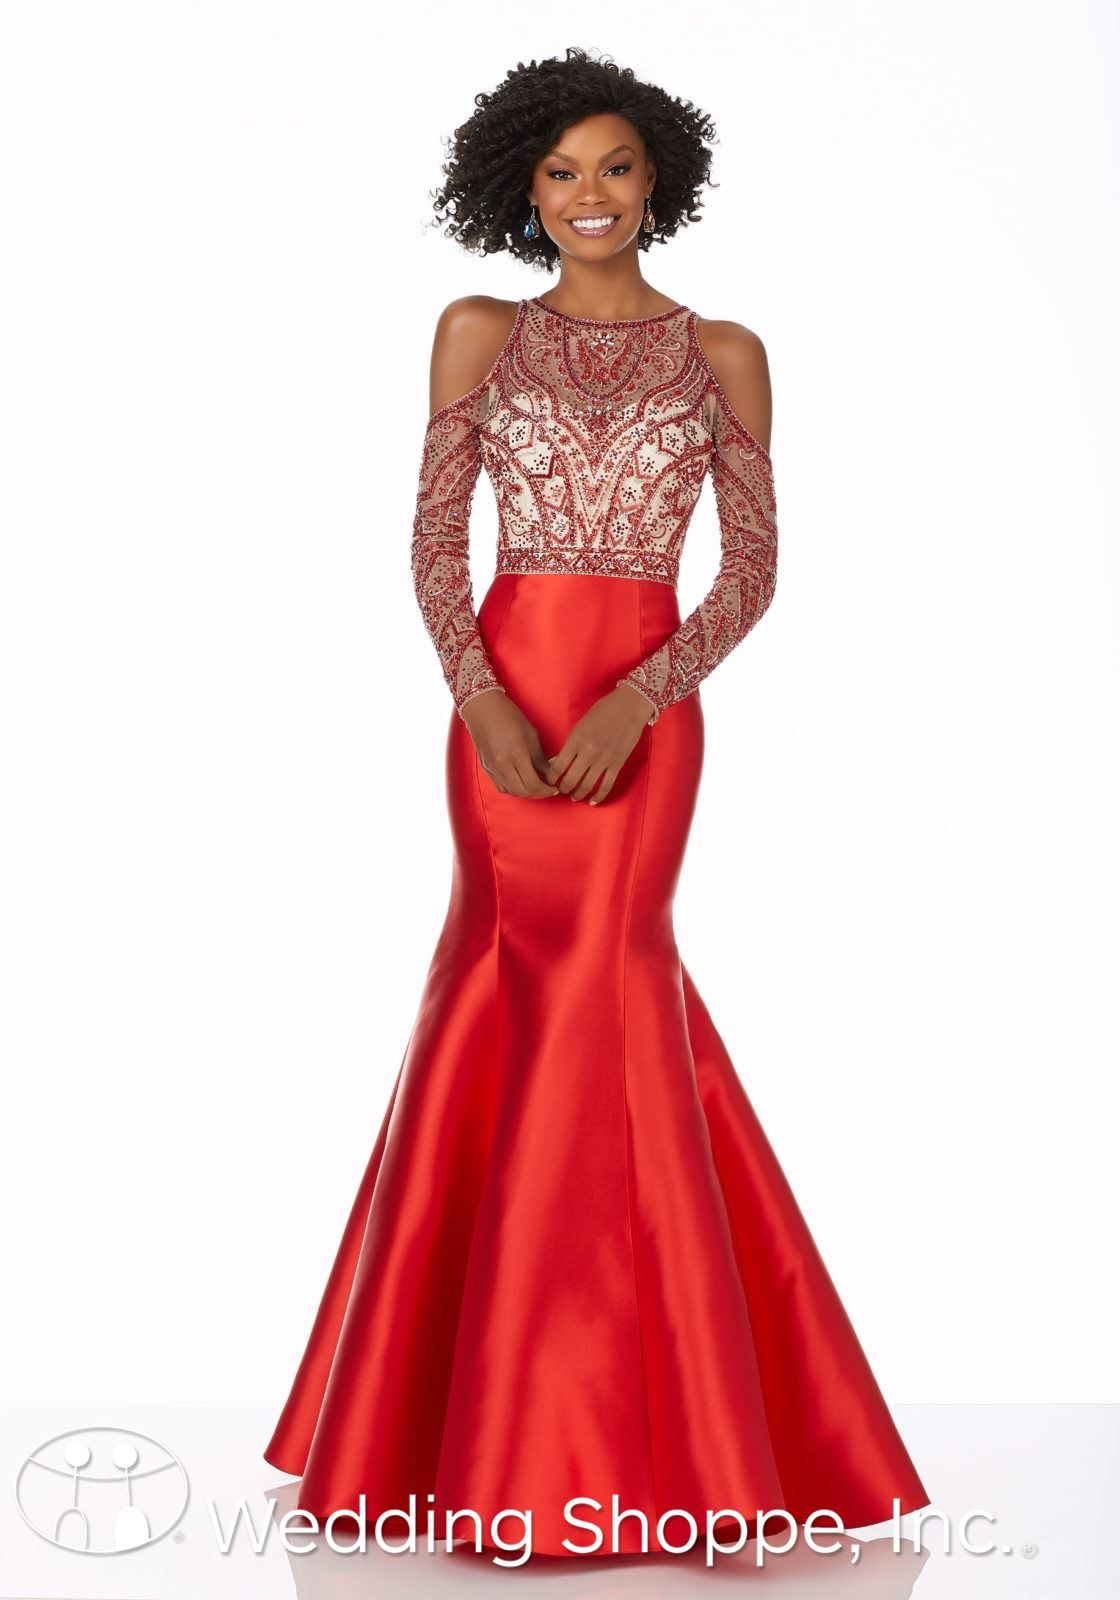 acf577c1ee This mermaid gown features a stunning silhouette with a cold shoulder  bodice